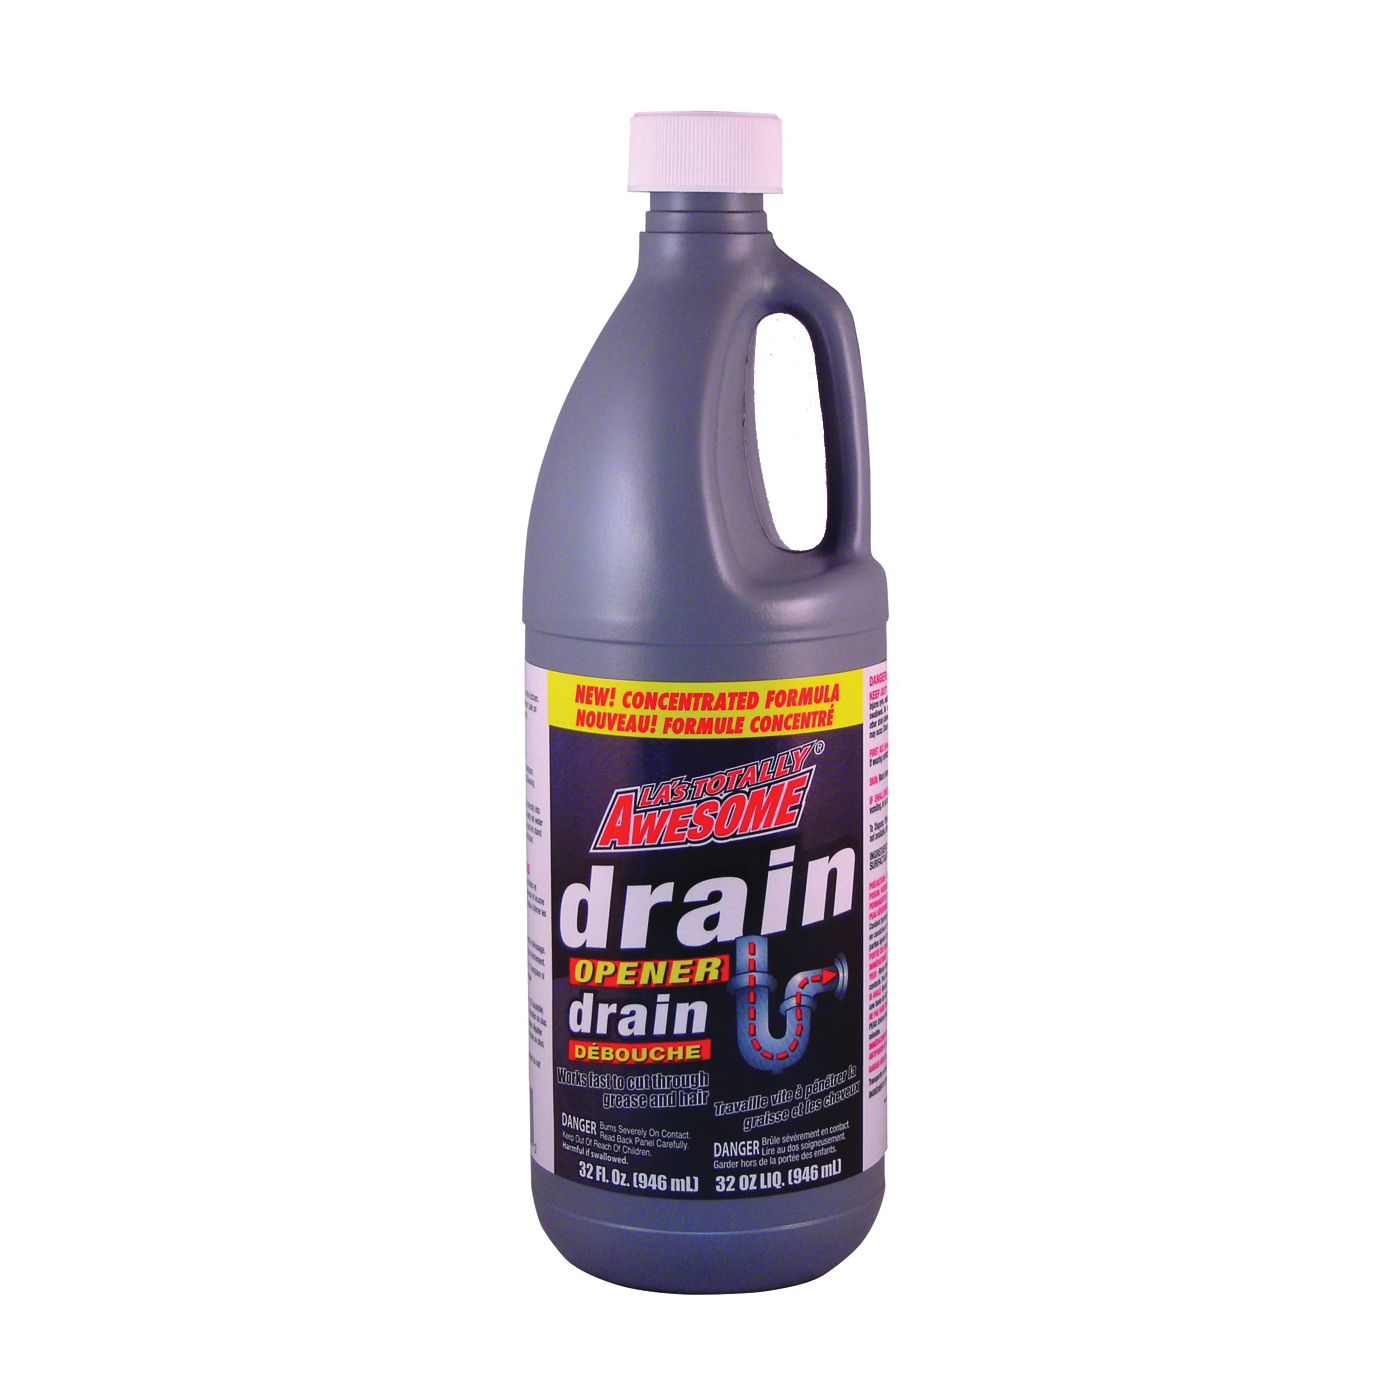 Picture of LA's TOTALLY AWESOME 216 Drain Opener, Liquid, Clear, Light Lemon, 32 oz Package, Bottle